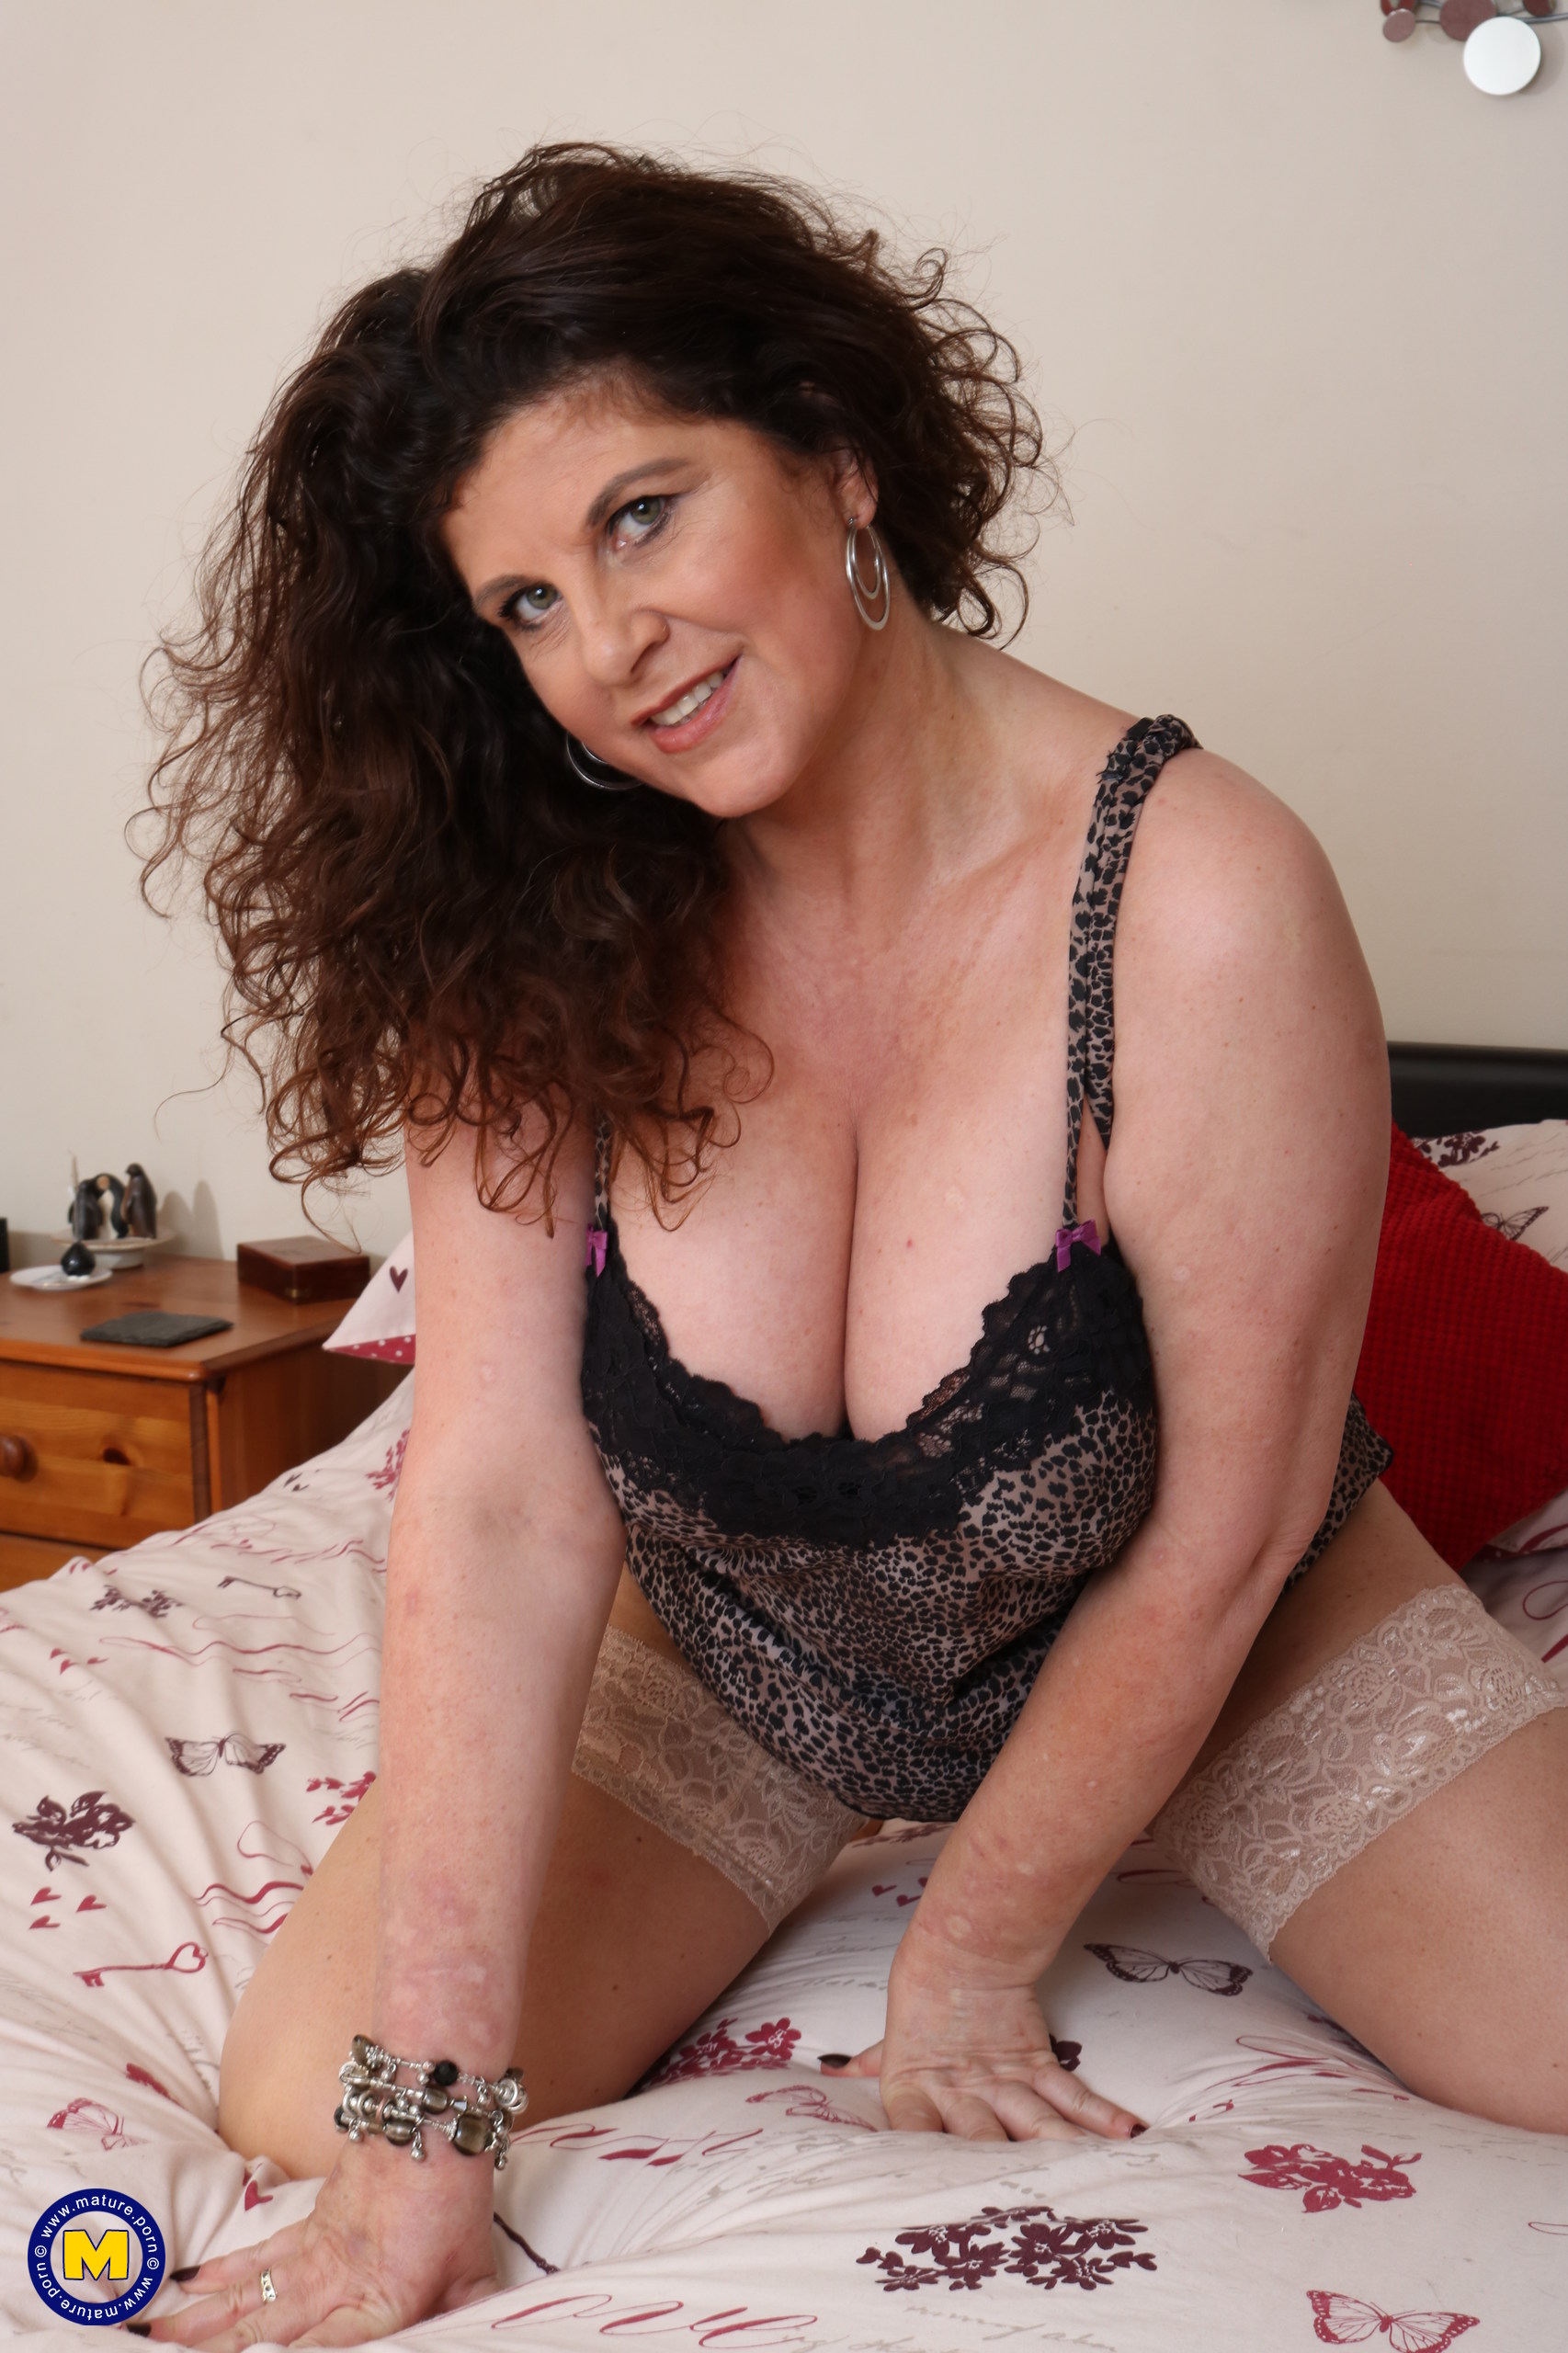 Insane English housewife toying with her coochie